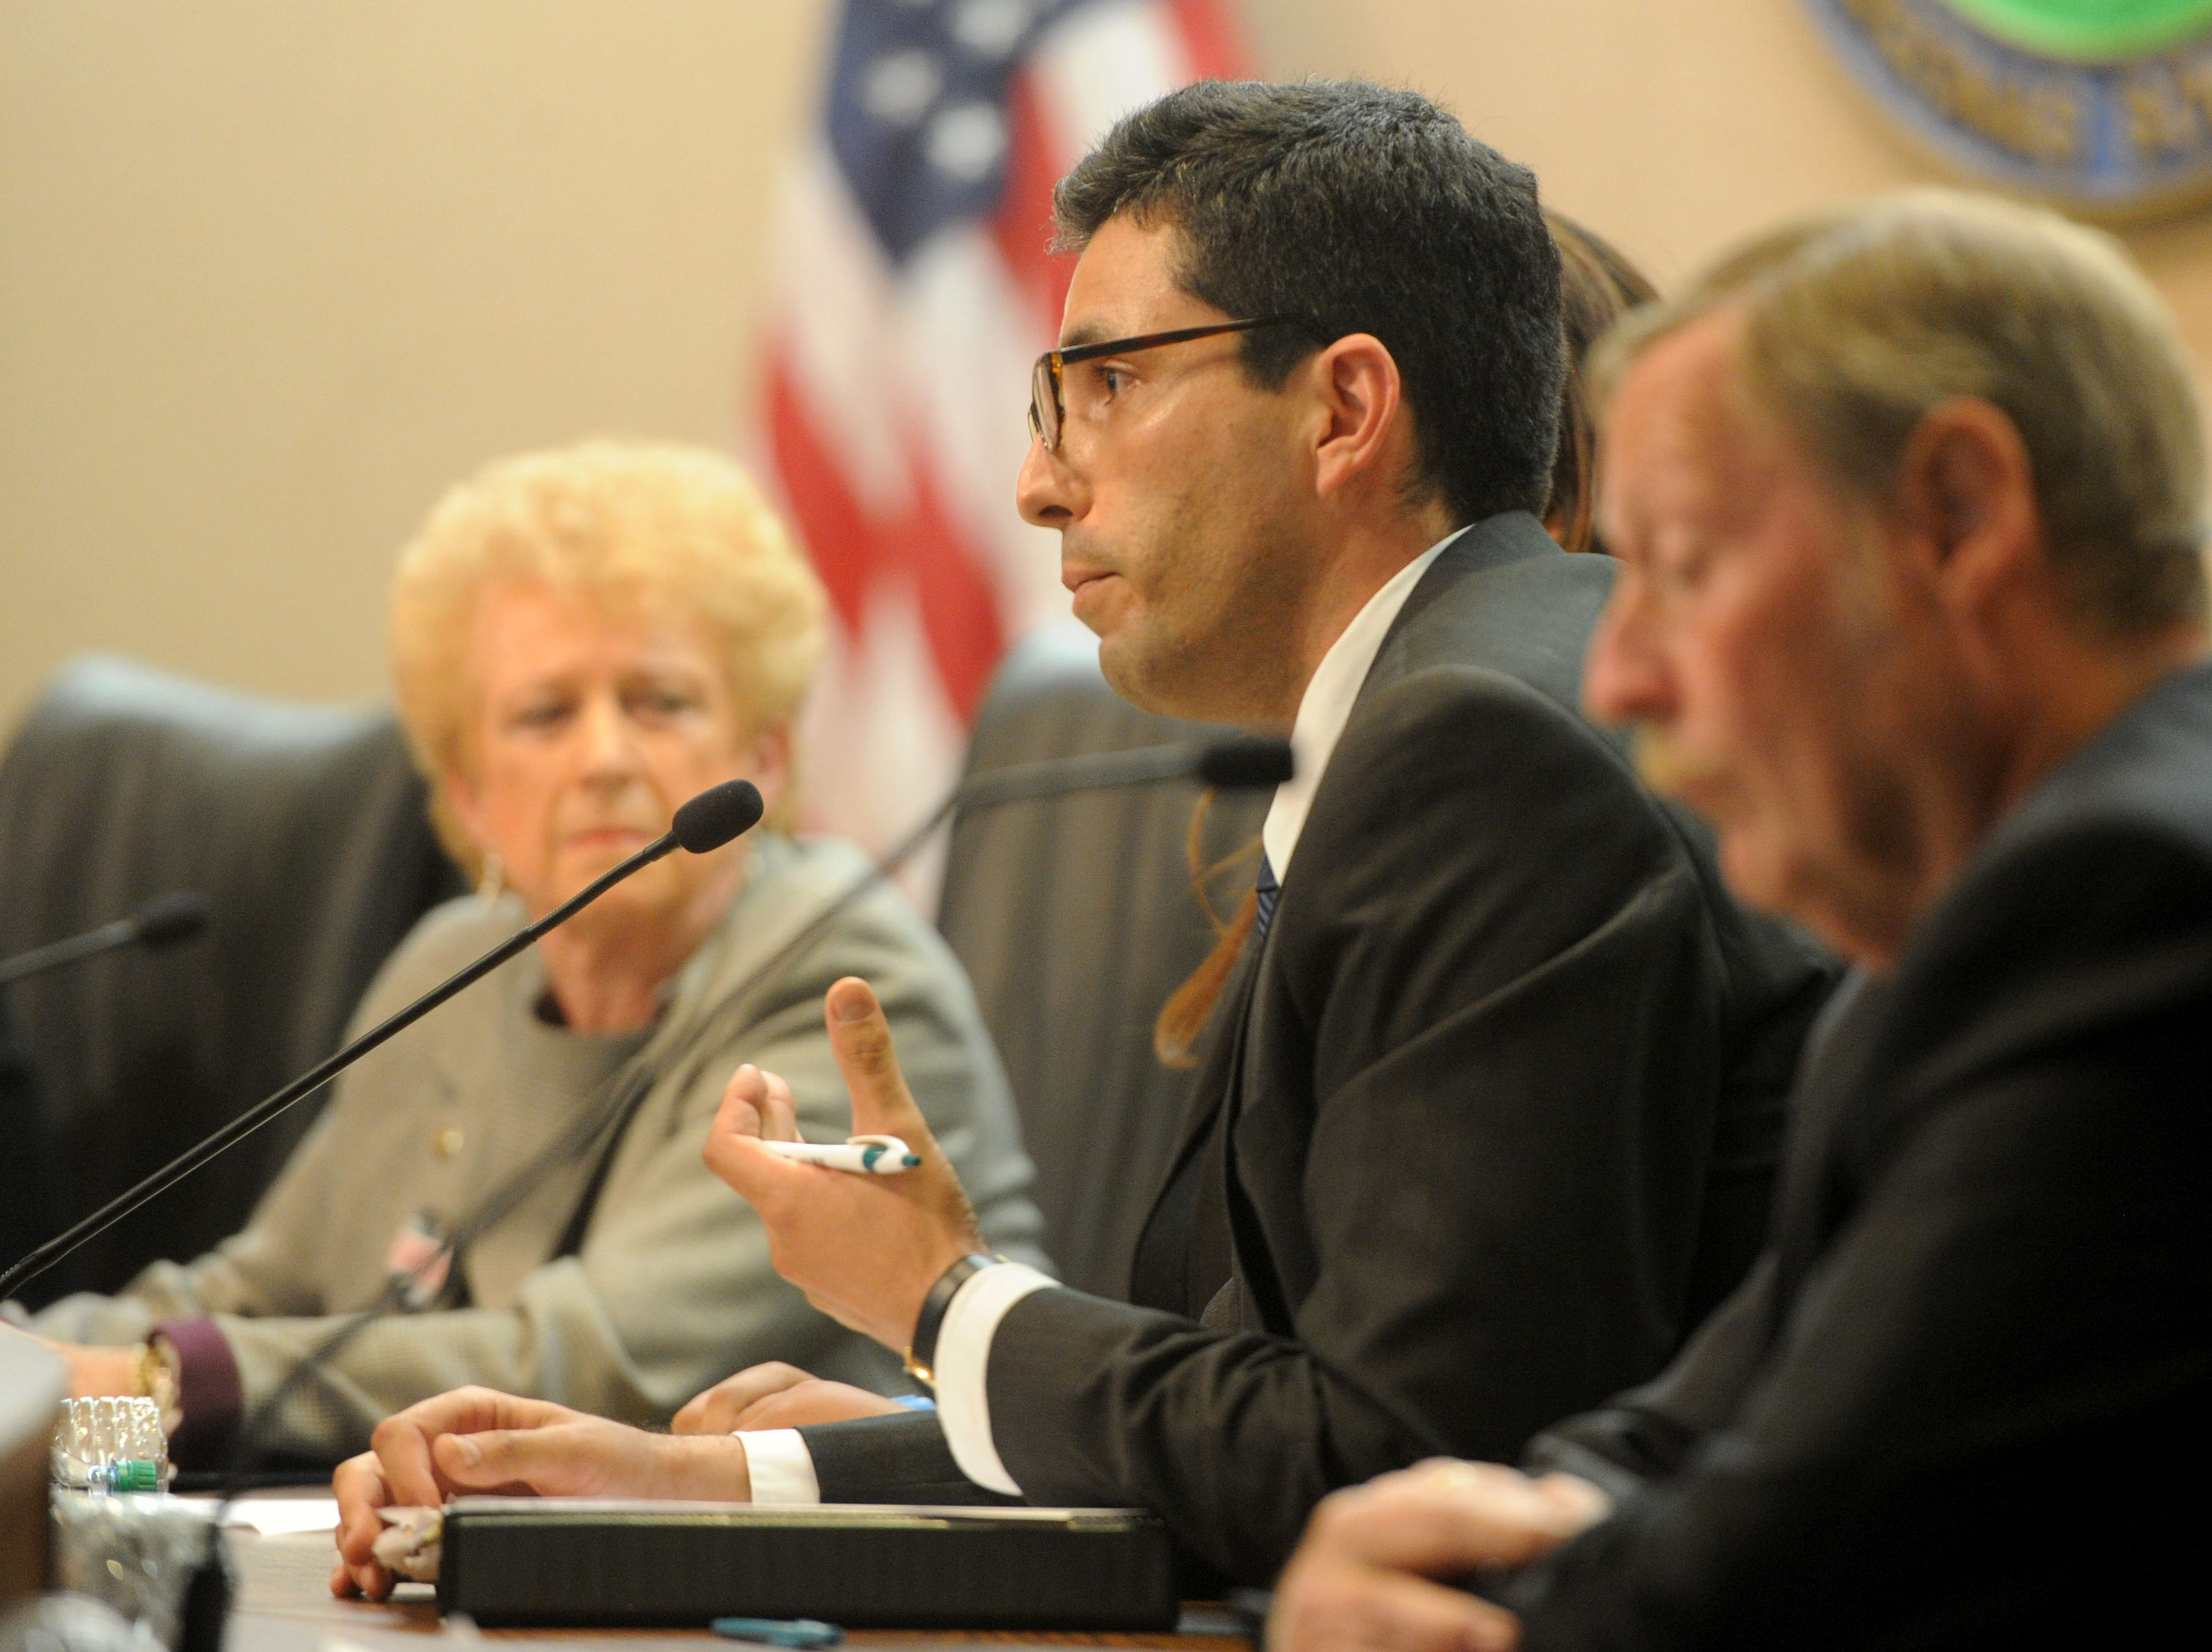 Daniel Goldberg gives an opening statement Tuesday night during a Camarillo City Council forum. Nine candidates are running to fill three seats. The forum was put by Ventura County League of Women Voters.